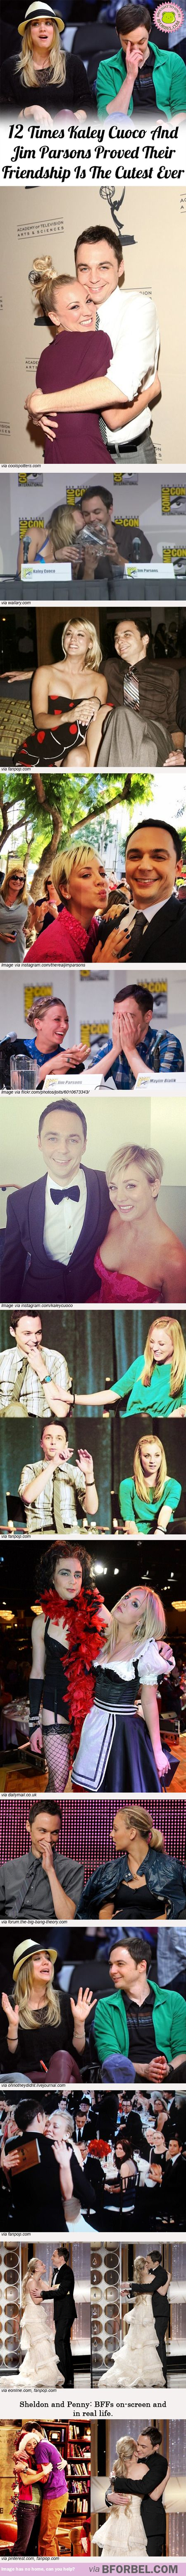 12 Time Kaley Cuoco And Jim Parsons Proved Their Friendship Is The Cutest Ever…